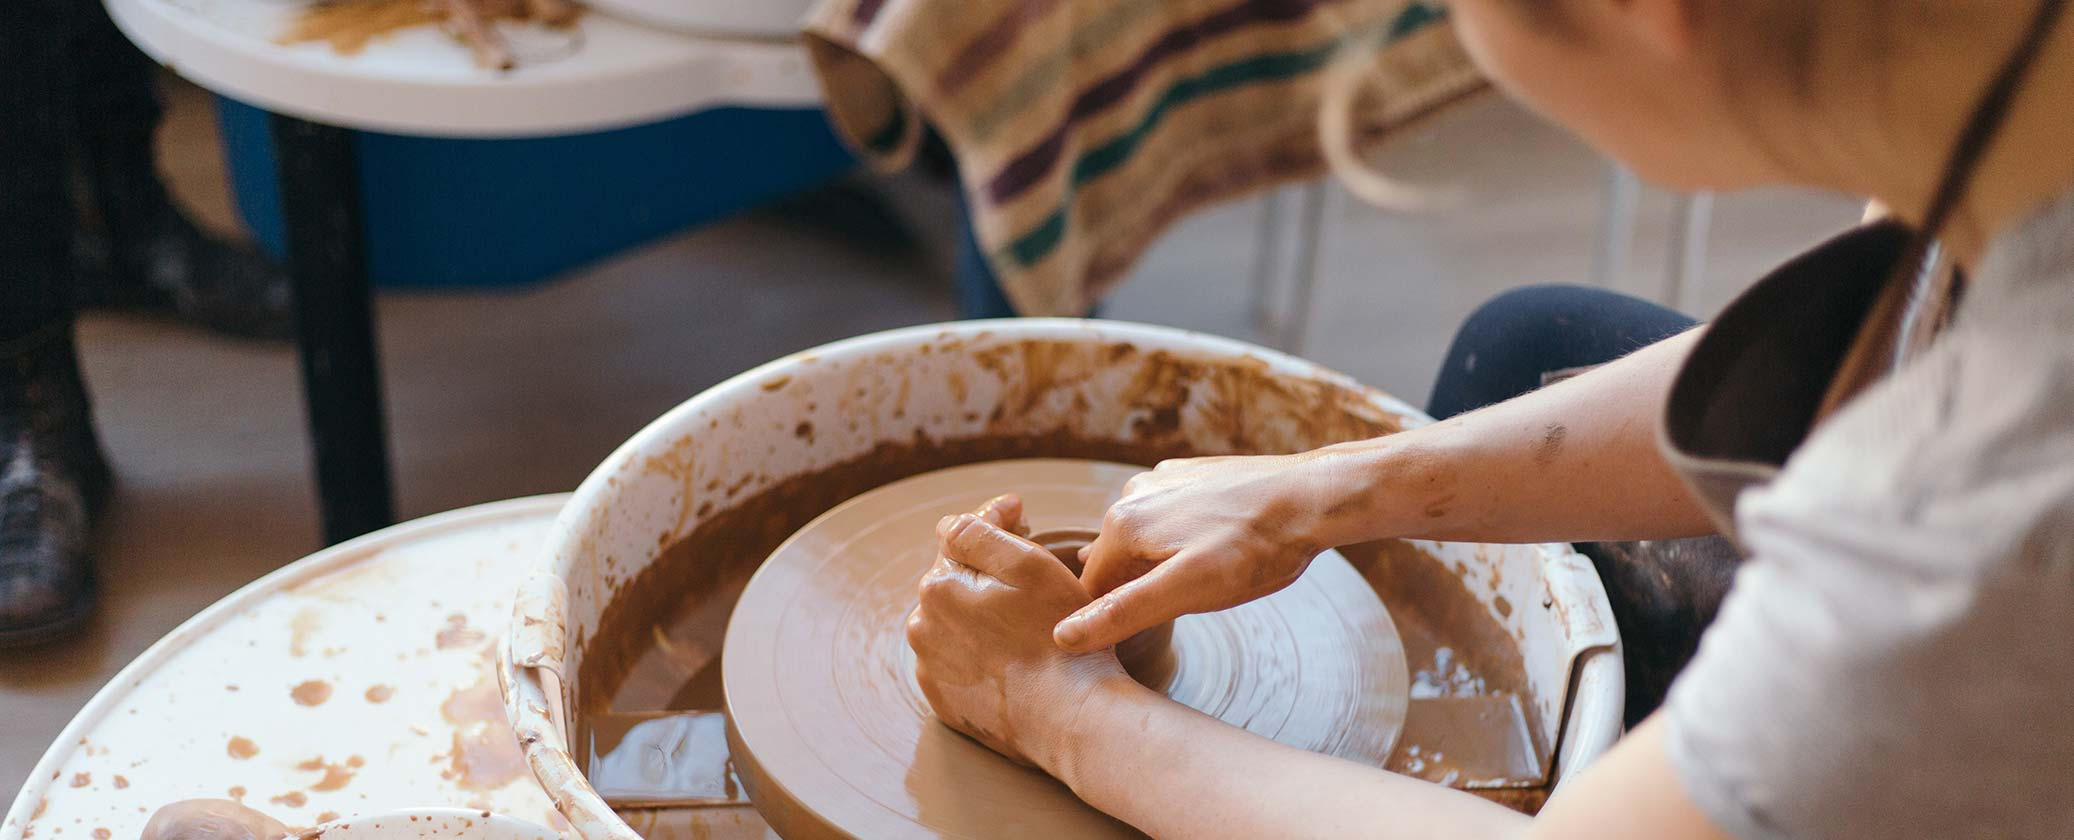 Photo of a person at a pottery wheel